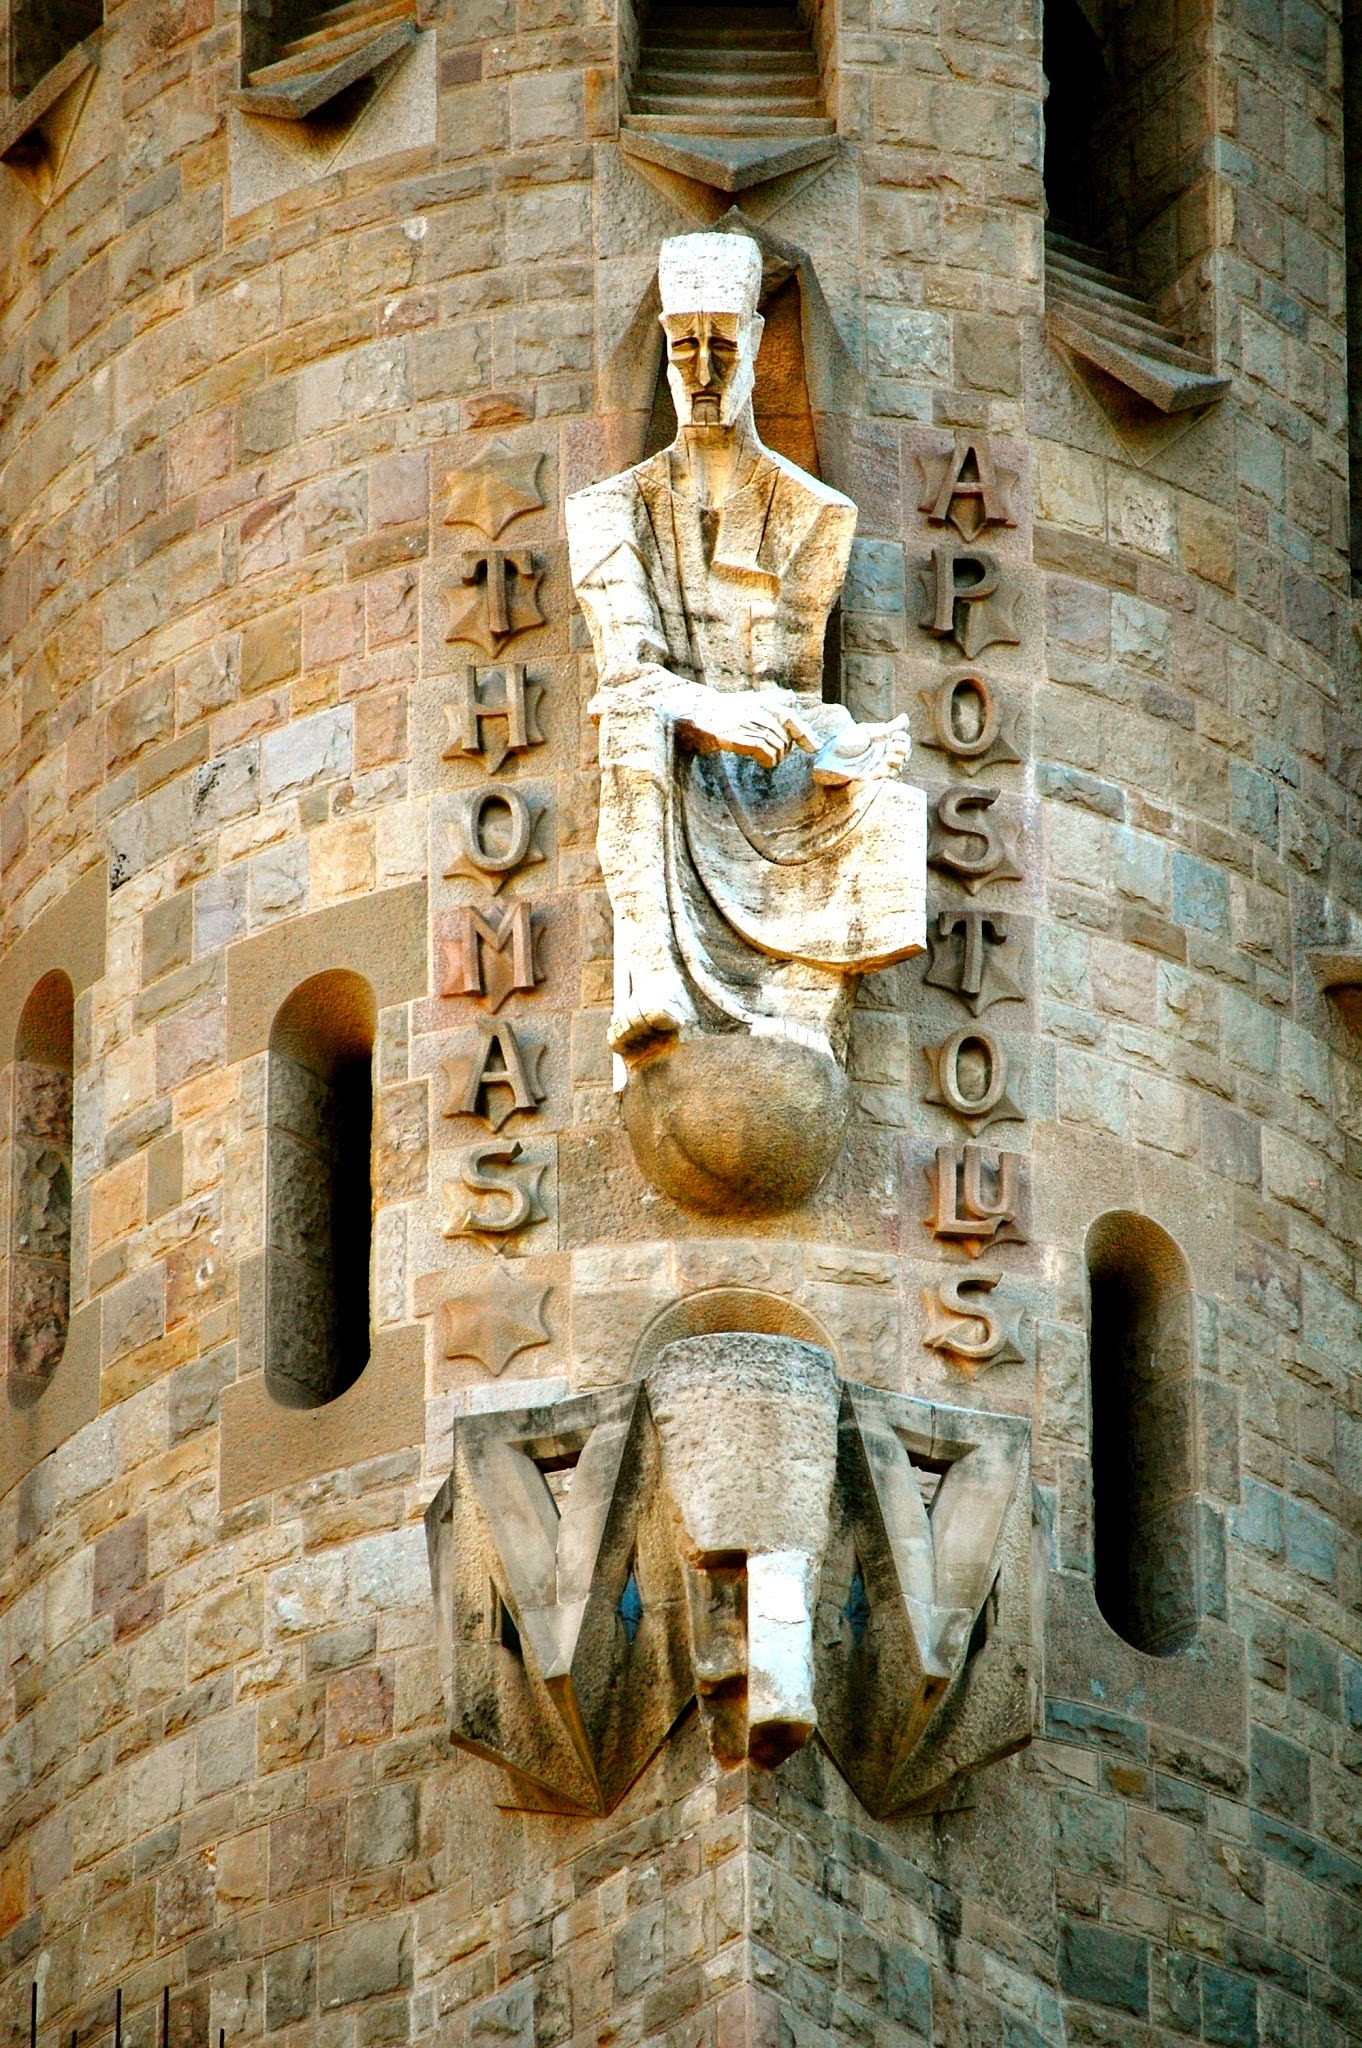 Carving of Doubting Thomas on the Passion Facade, Sagrada Família